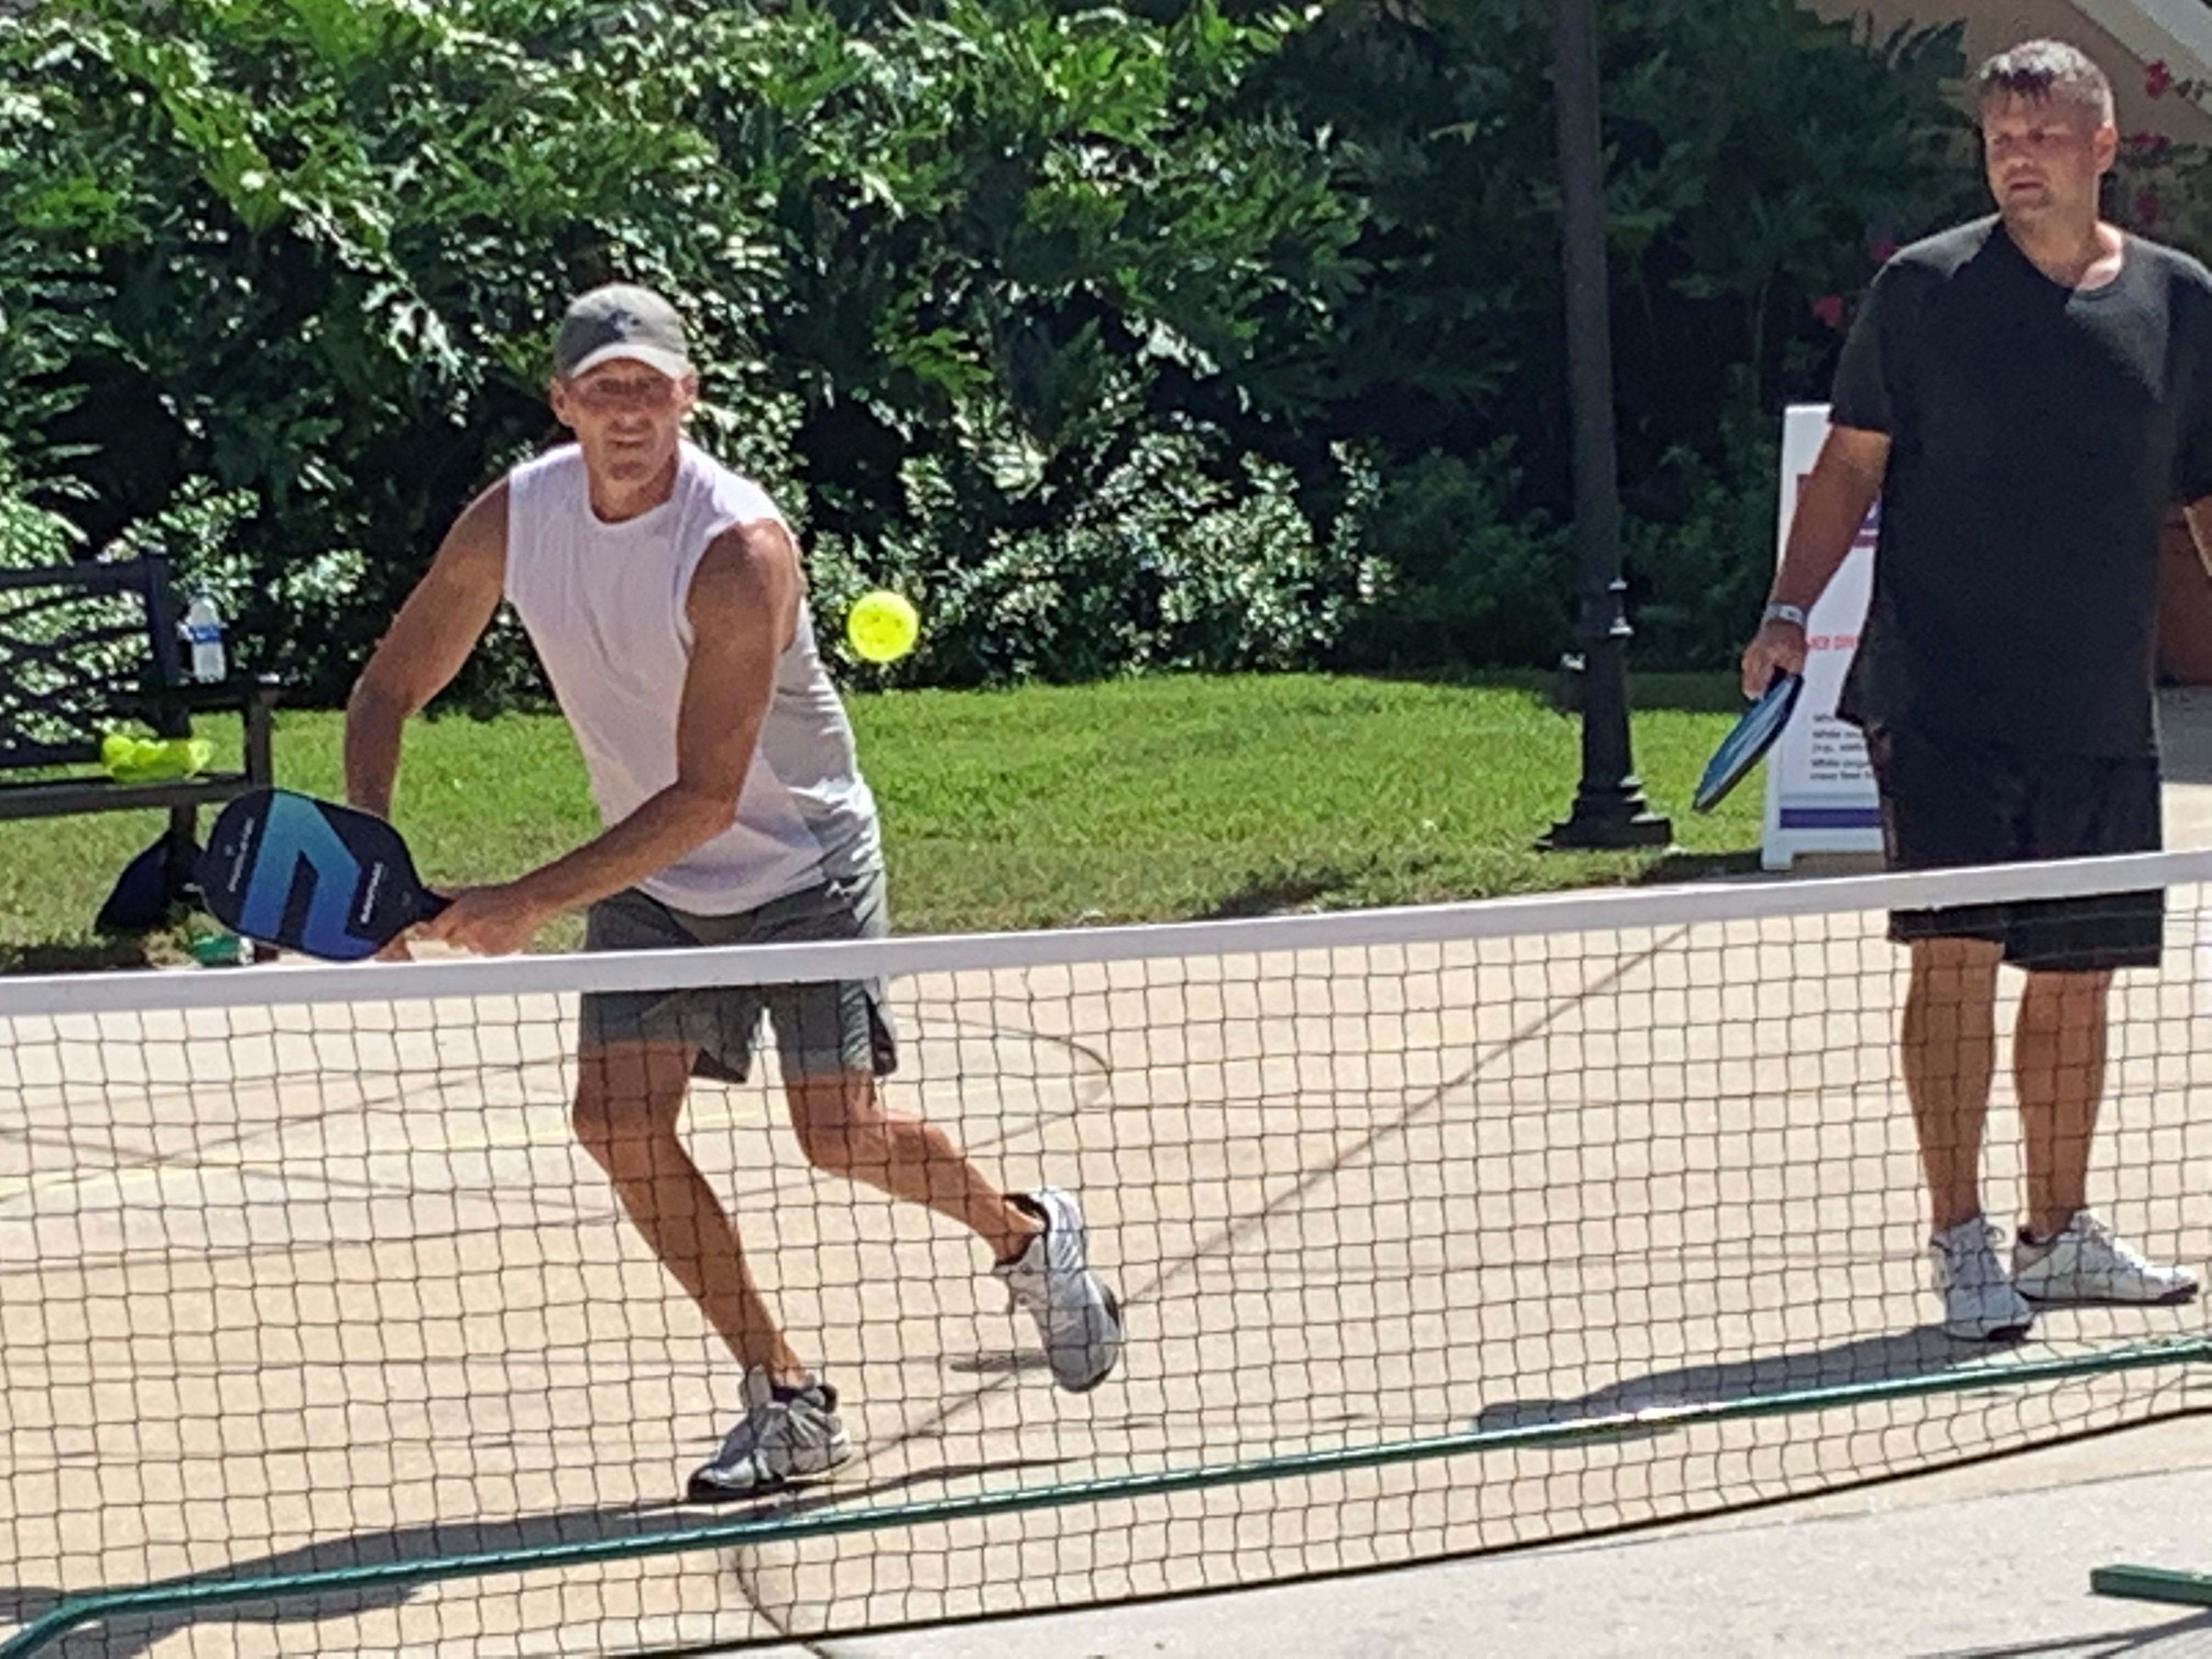 Inside the NBA bubble, pickleball battles have become the stuff of legend